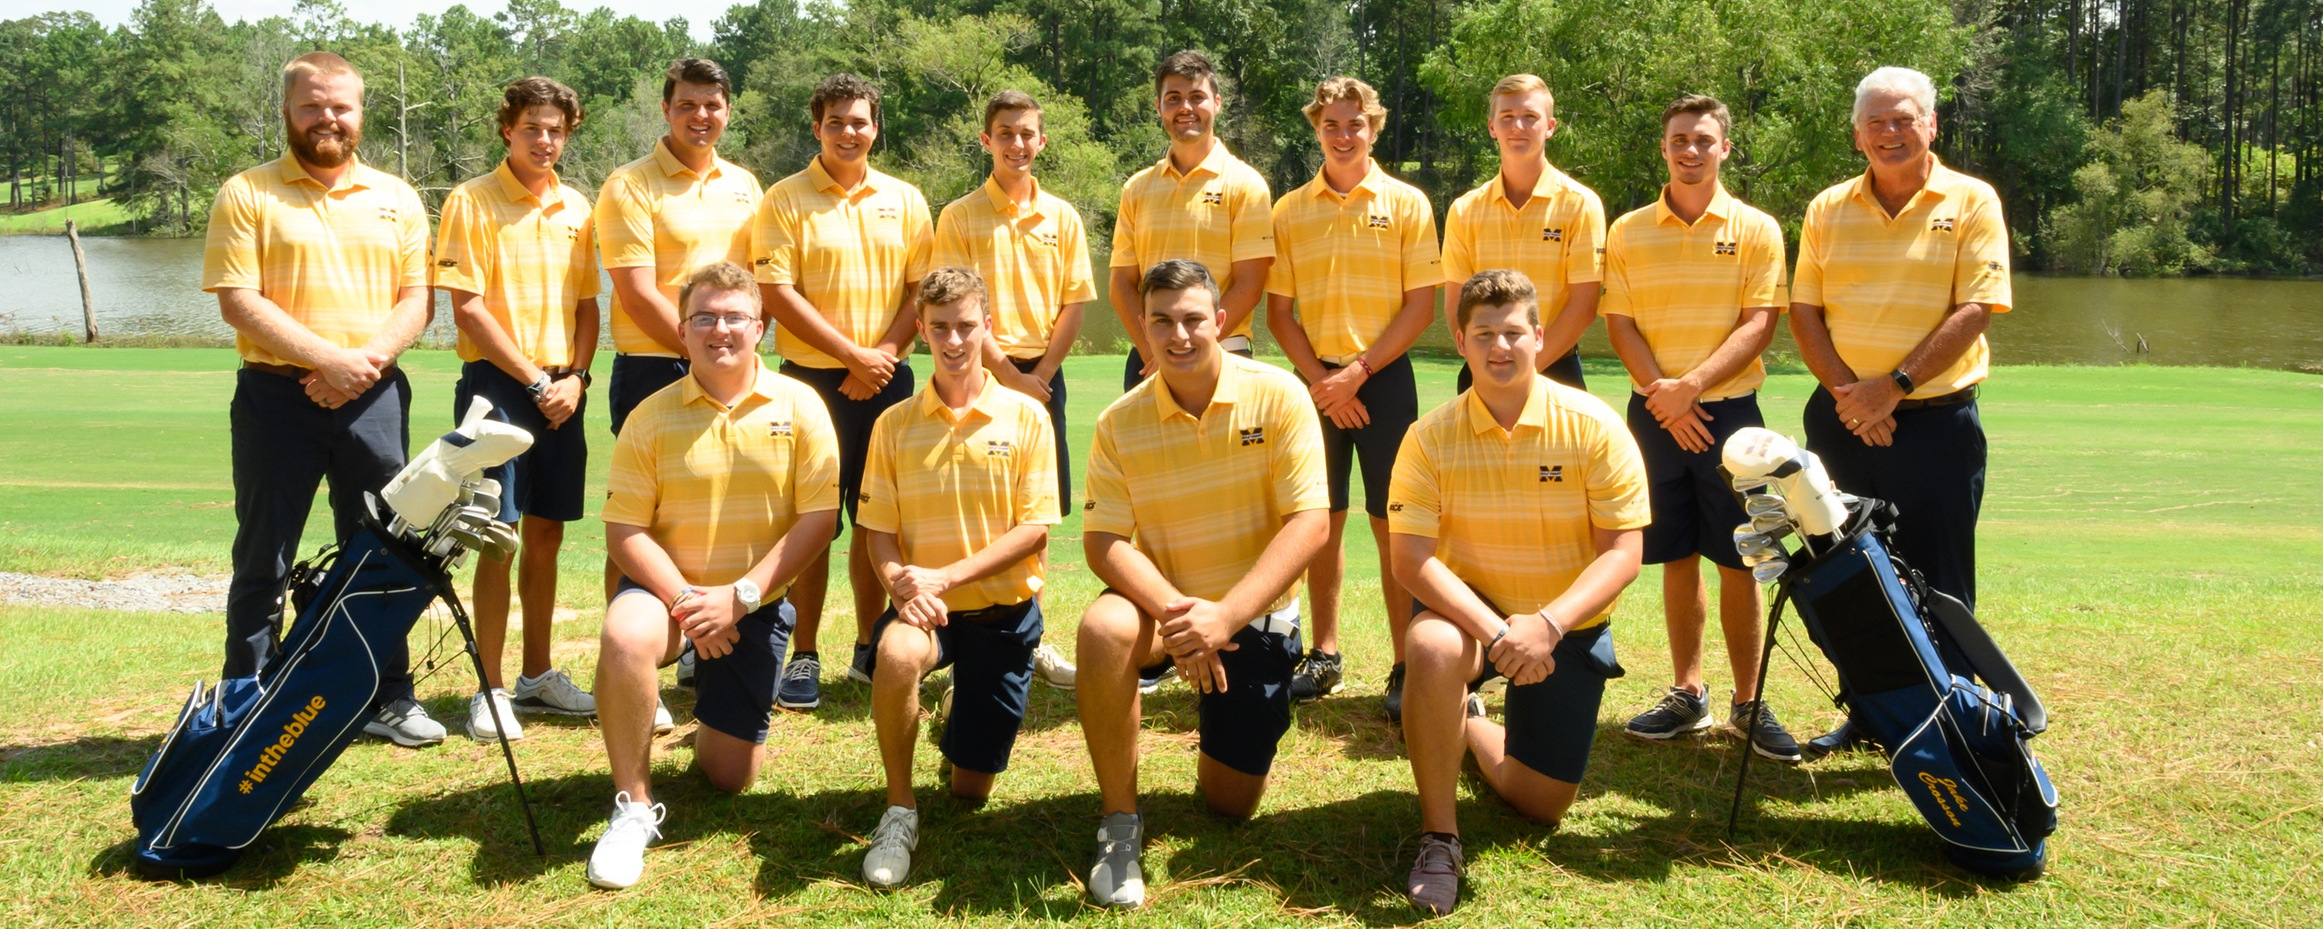 No. 2 MGCCC trails after 1st round in Amory